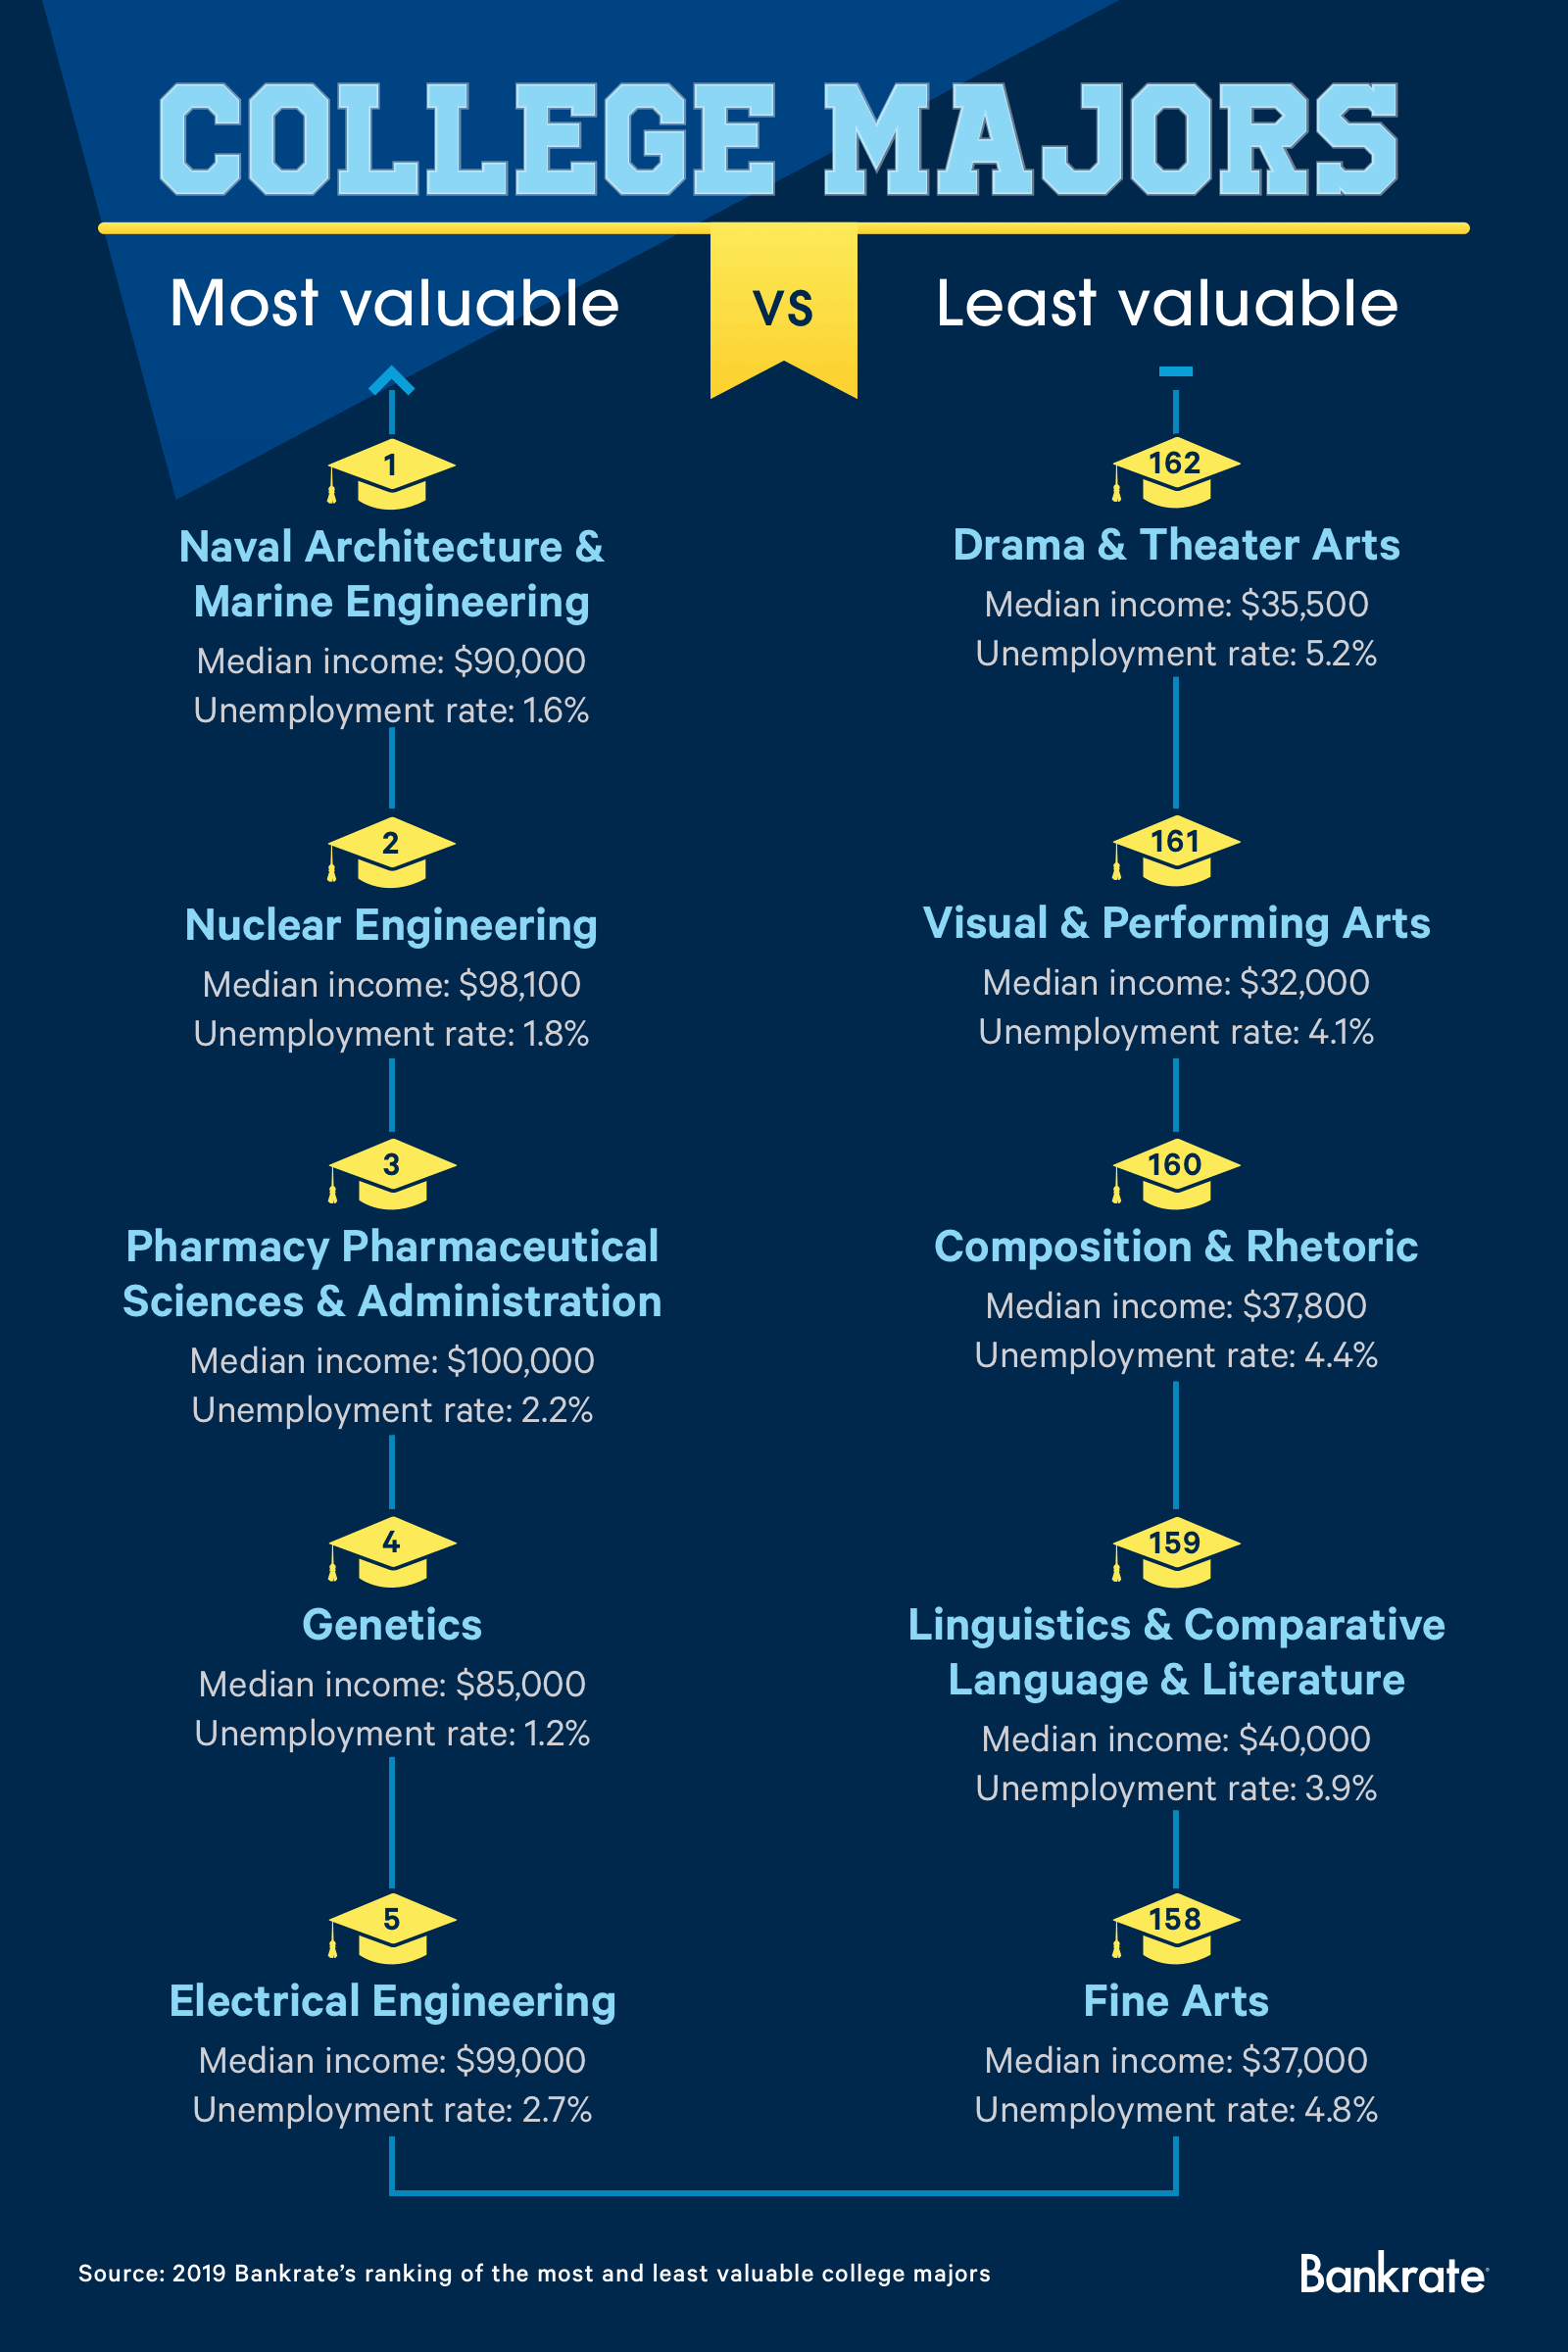 College majors. Most valuable: Naval architecture and marine engineering; nuclear engineering; pharmacy, pharmaceutical sciences and administration; genetics; and electrical engineering. Least valuable: Drama and theatre arts; visual and performing arts; composition and rhetoric; longuistics and comparative language and literature; and fine arts. Source: 2019 Bankrate's ranking of the most and least valuable college majors.